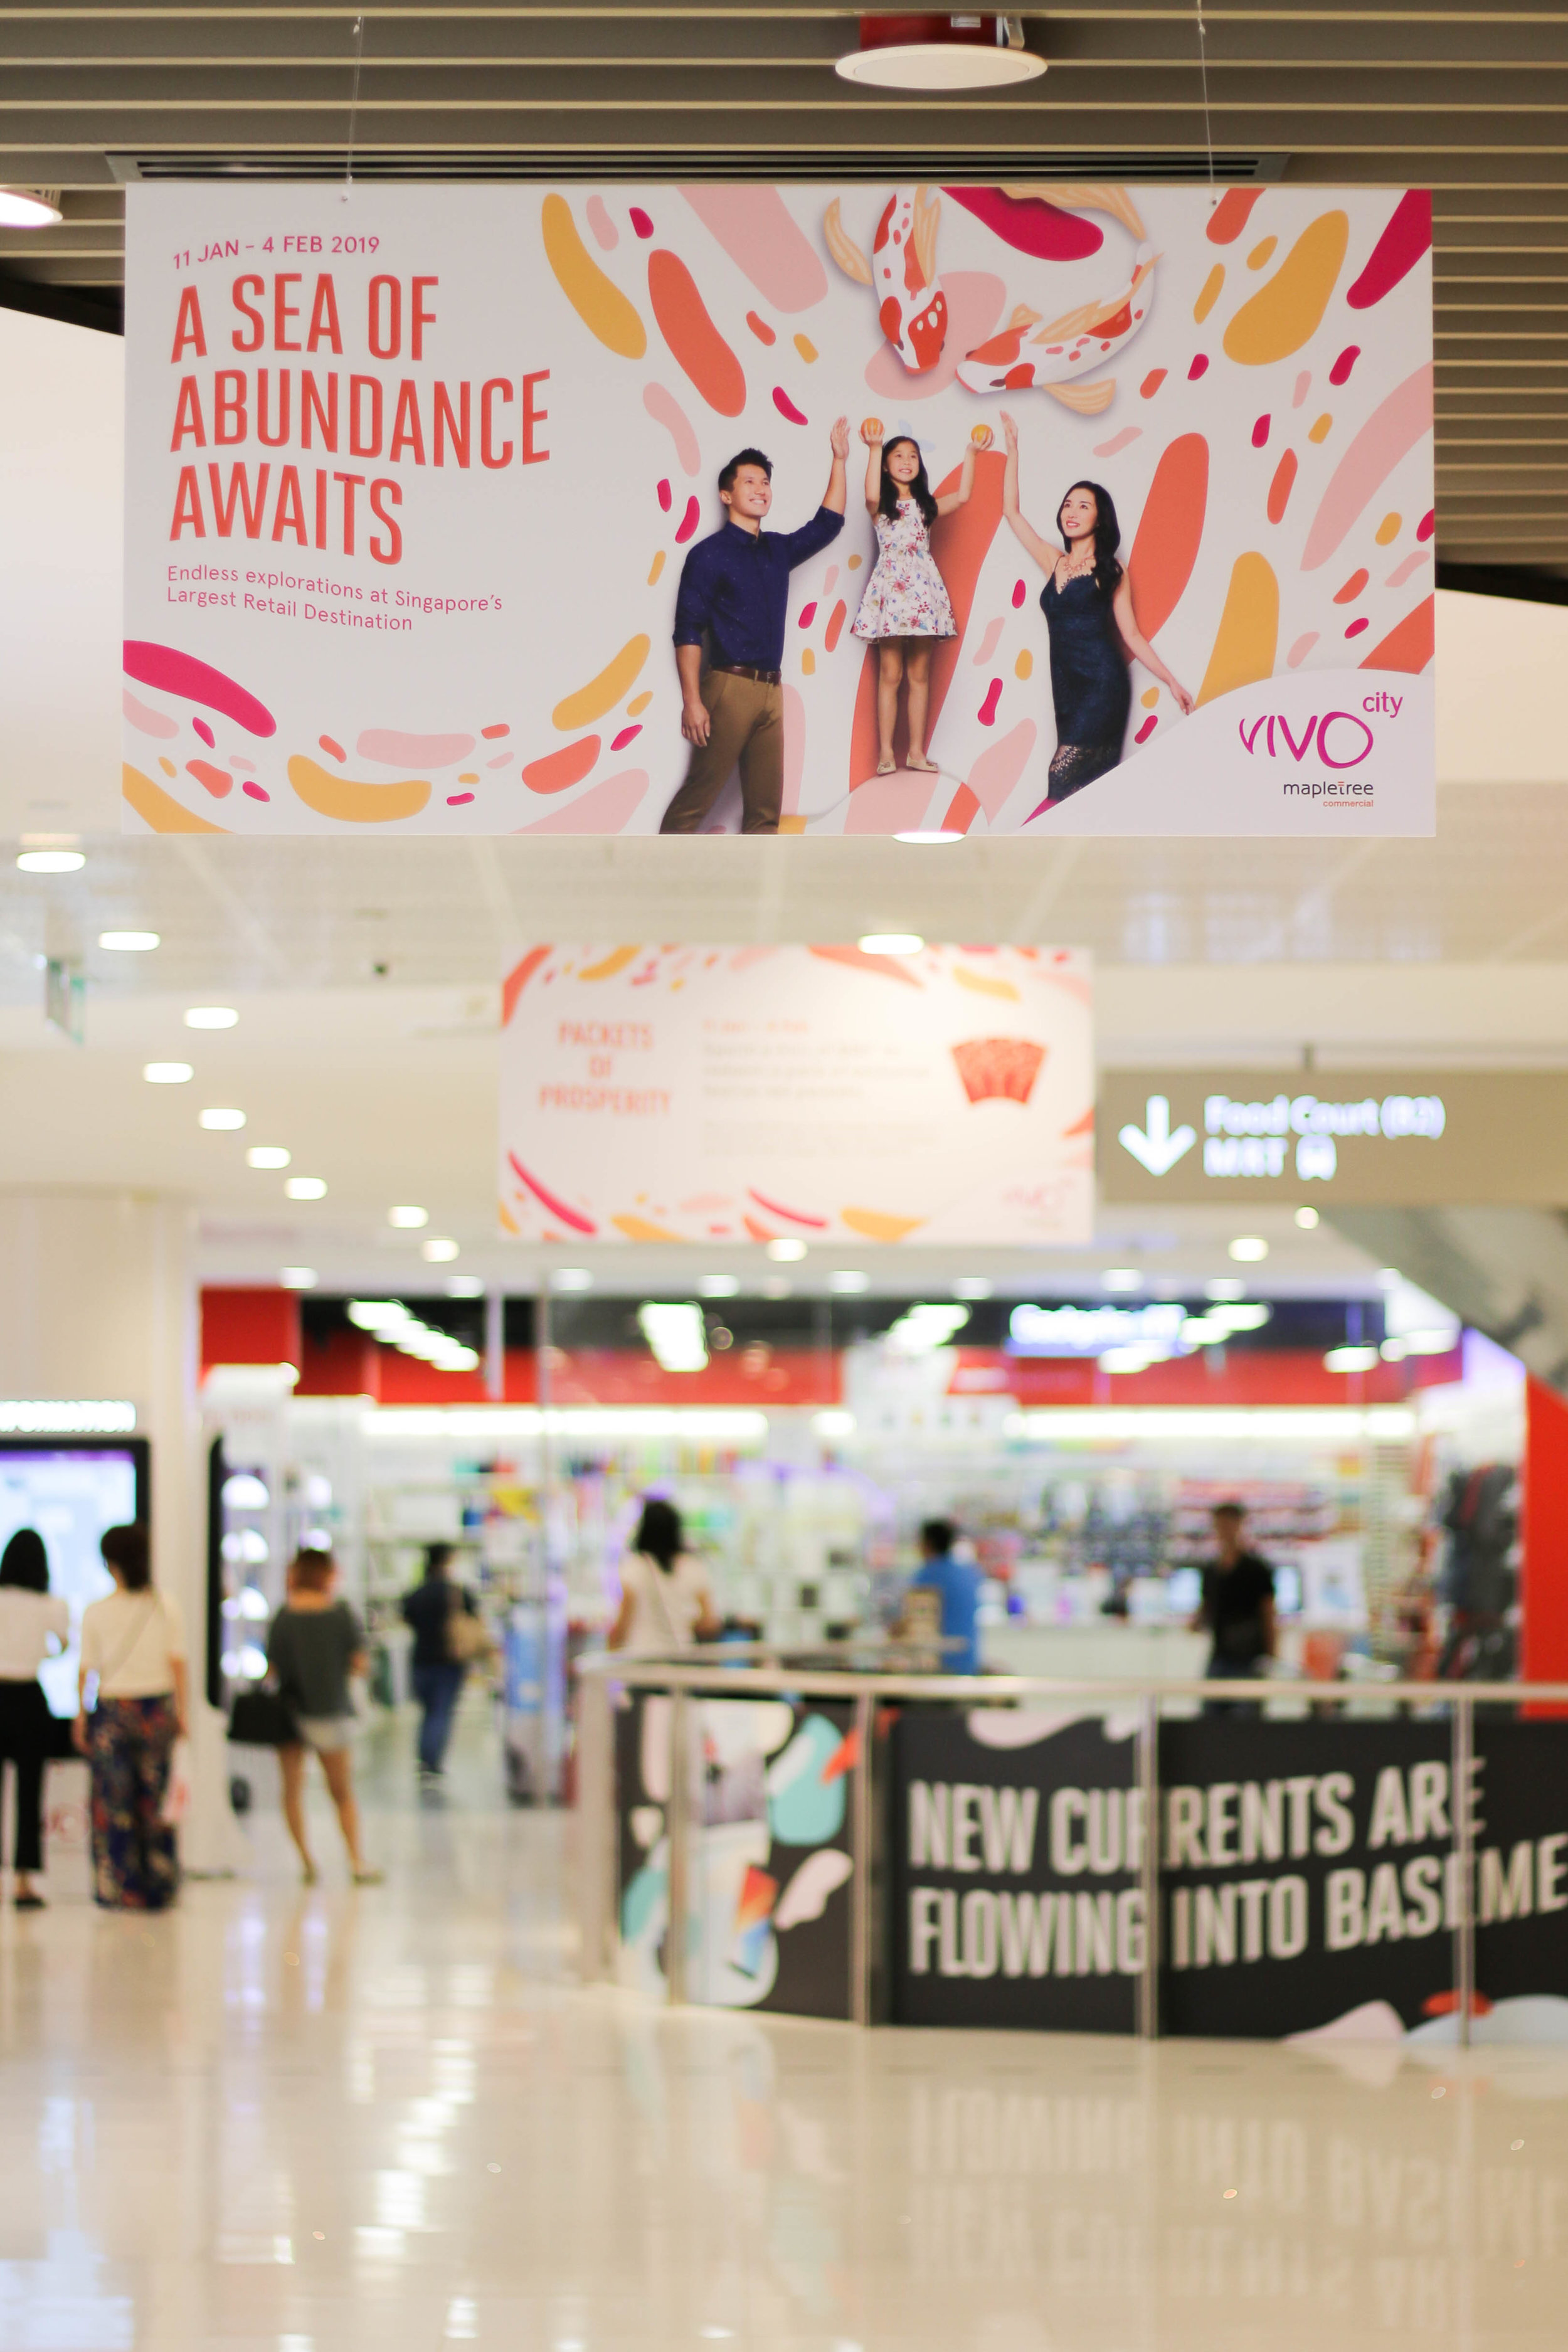 outeredit vivocity chinese new year banners